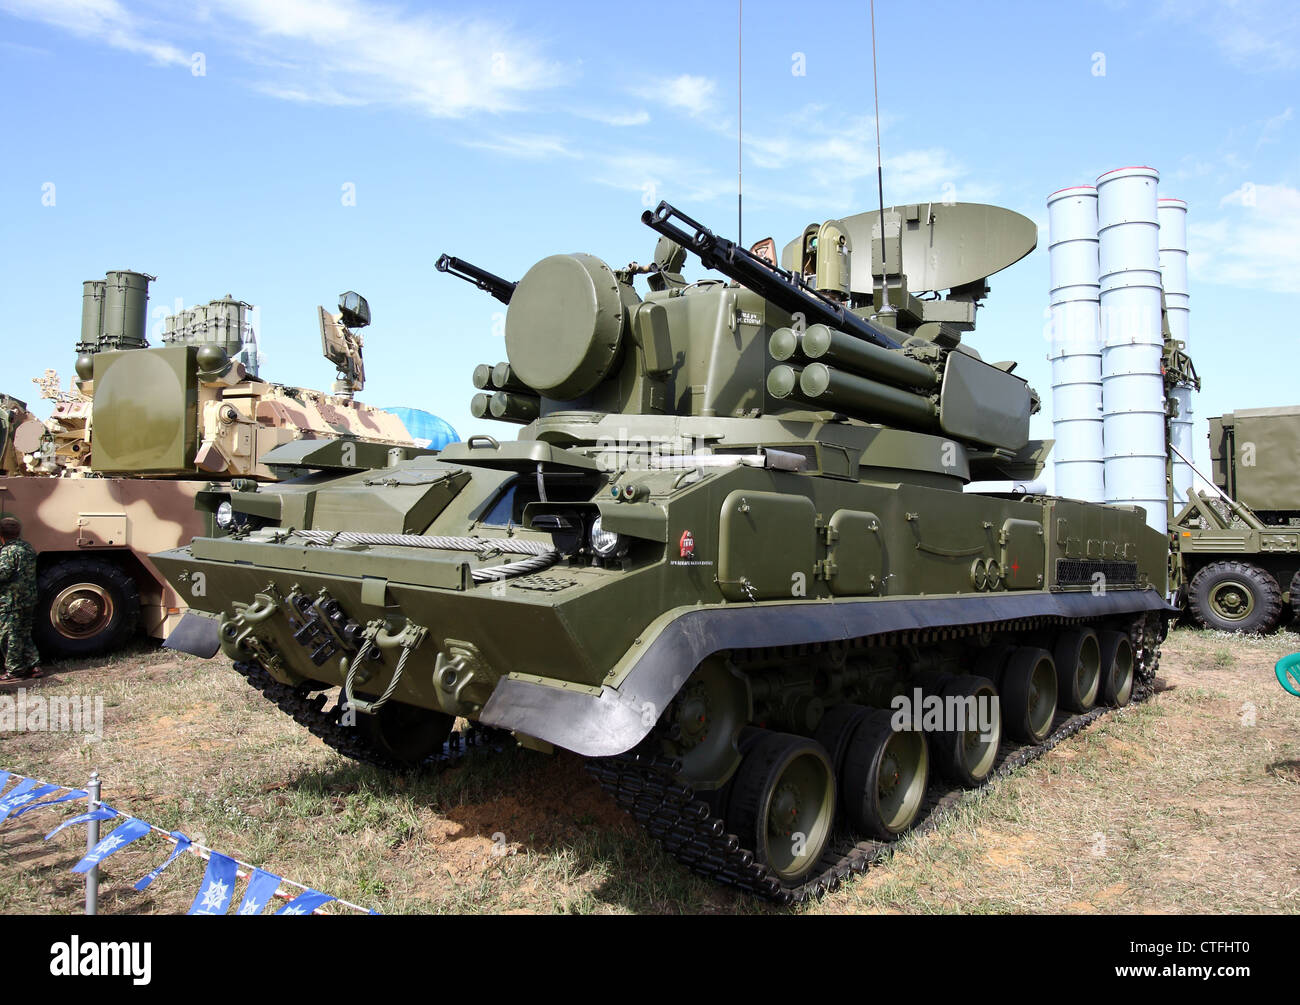 Tracked self-propelled anti-aircraft weapon armed with a surface-to-air gun and missile system Tunguska (The international - Stock Image